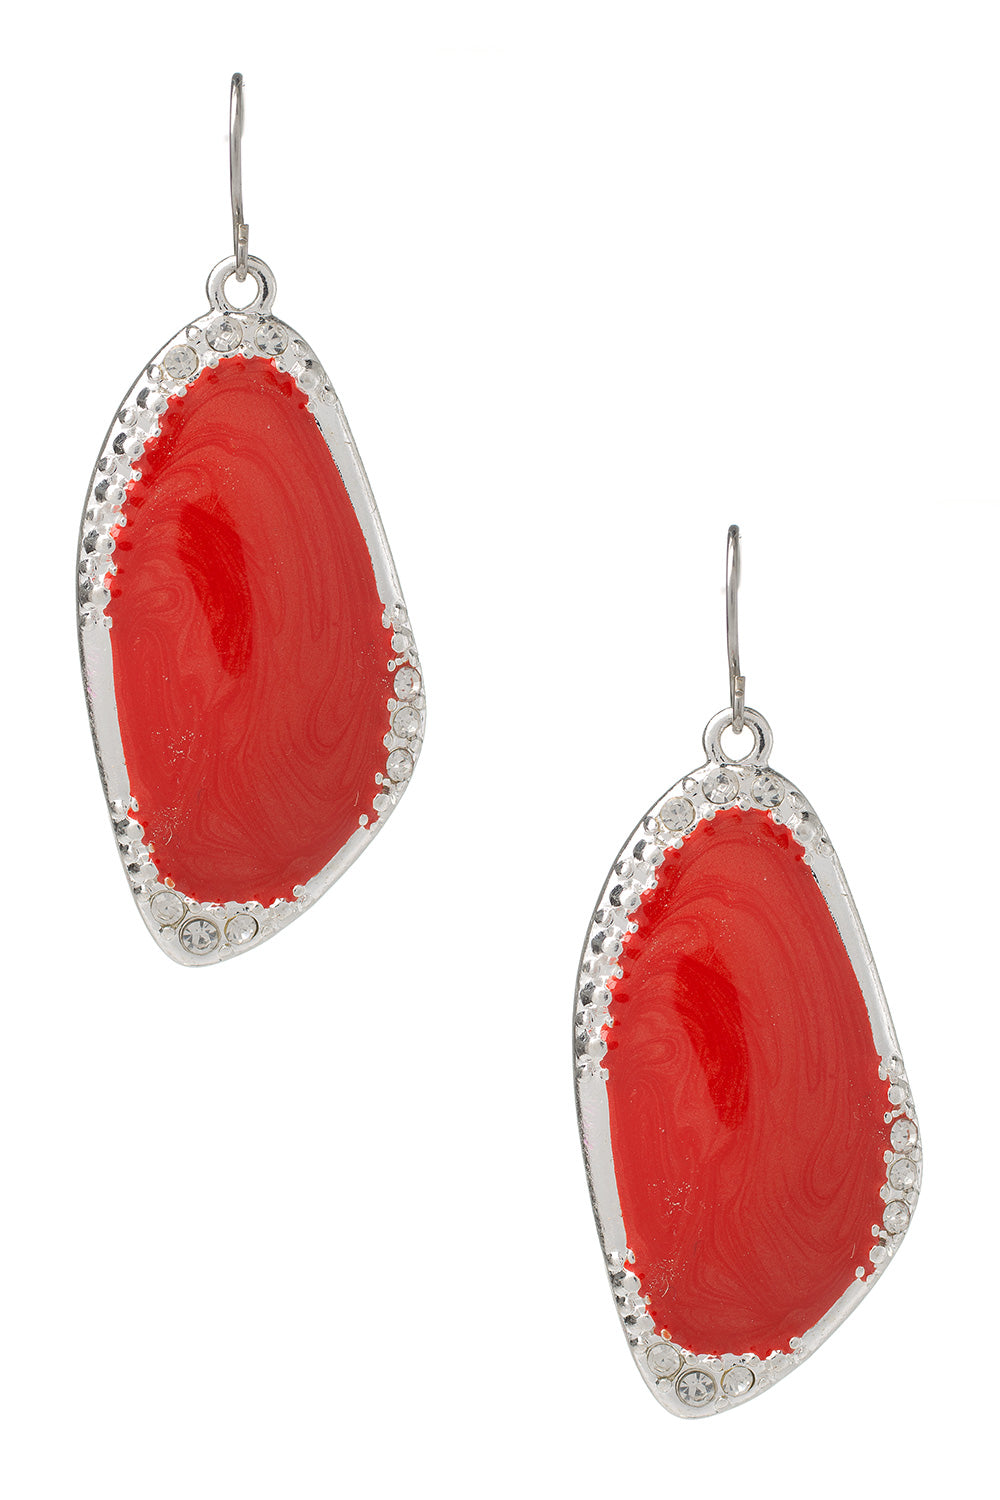 Type 4 Ruby Center Earrings